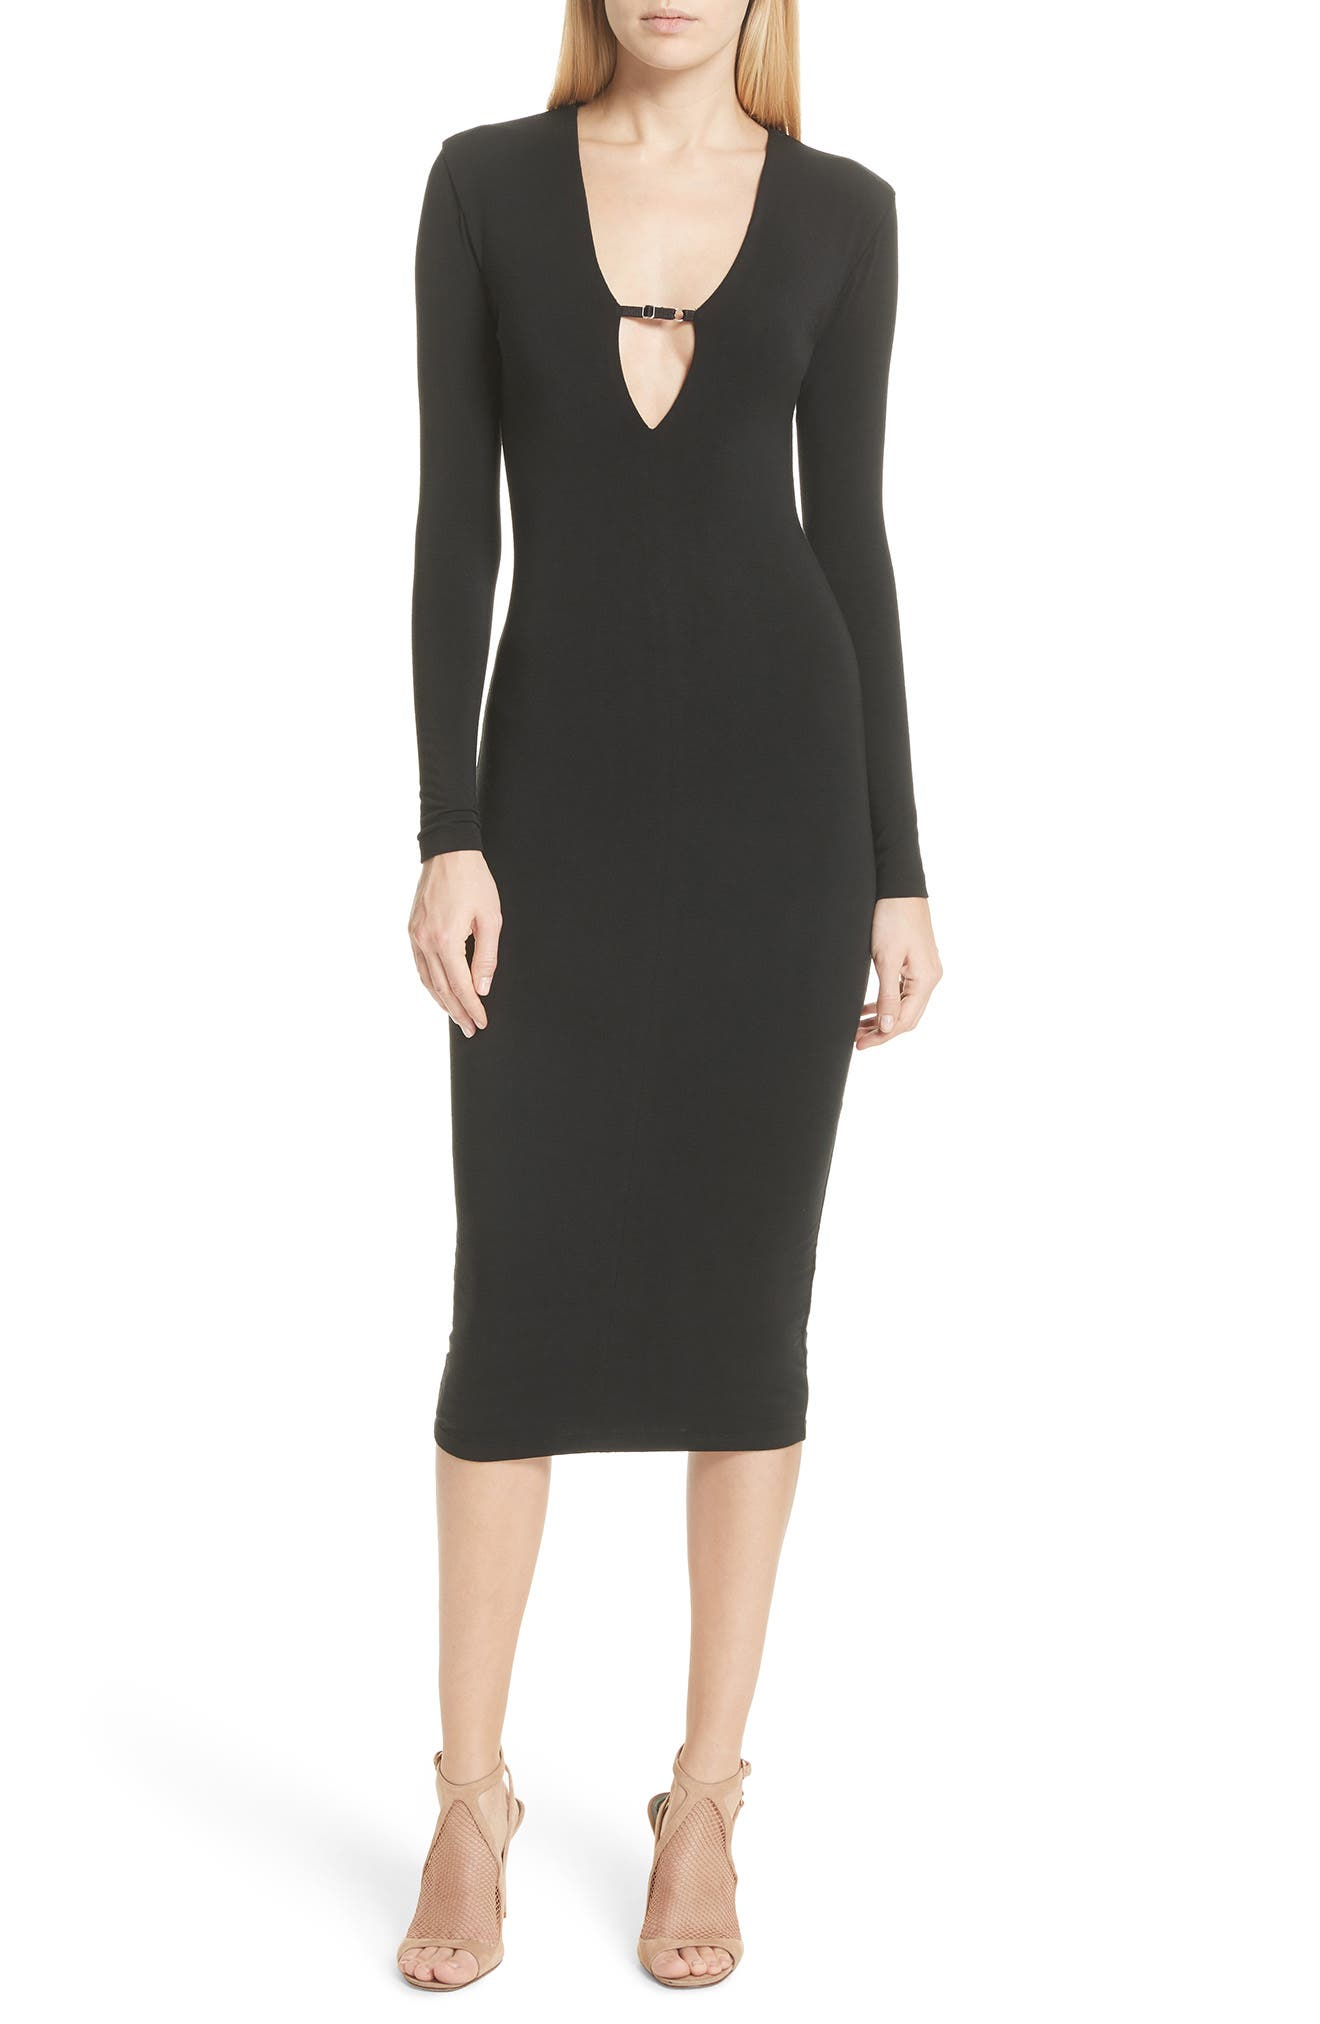 T by Alexander Wang Keyhole Neck Body-Con Dress,                             Main thumbnail 1, color,                             001